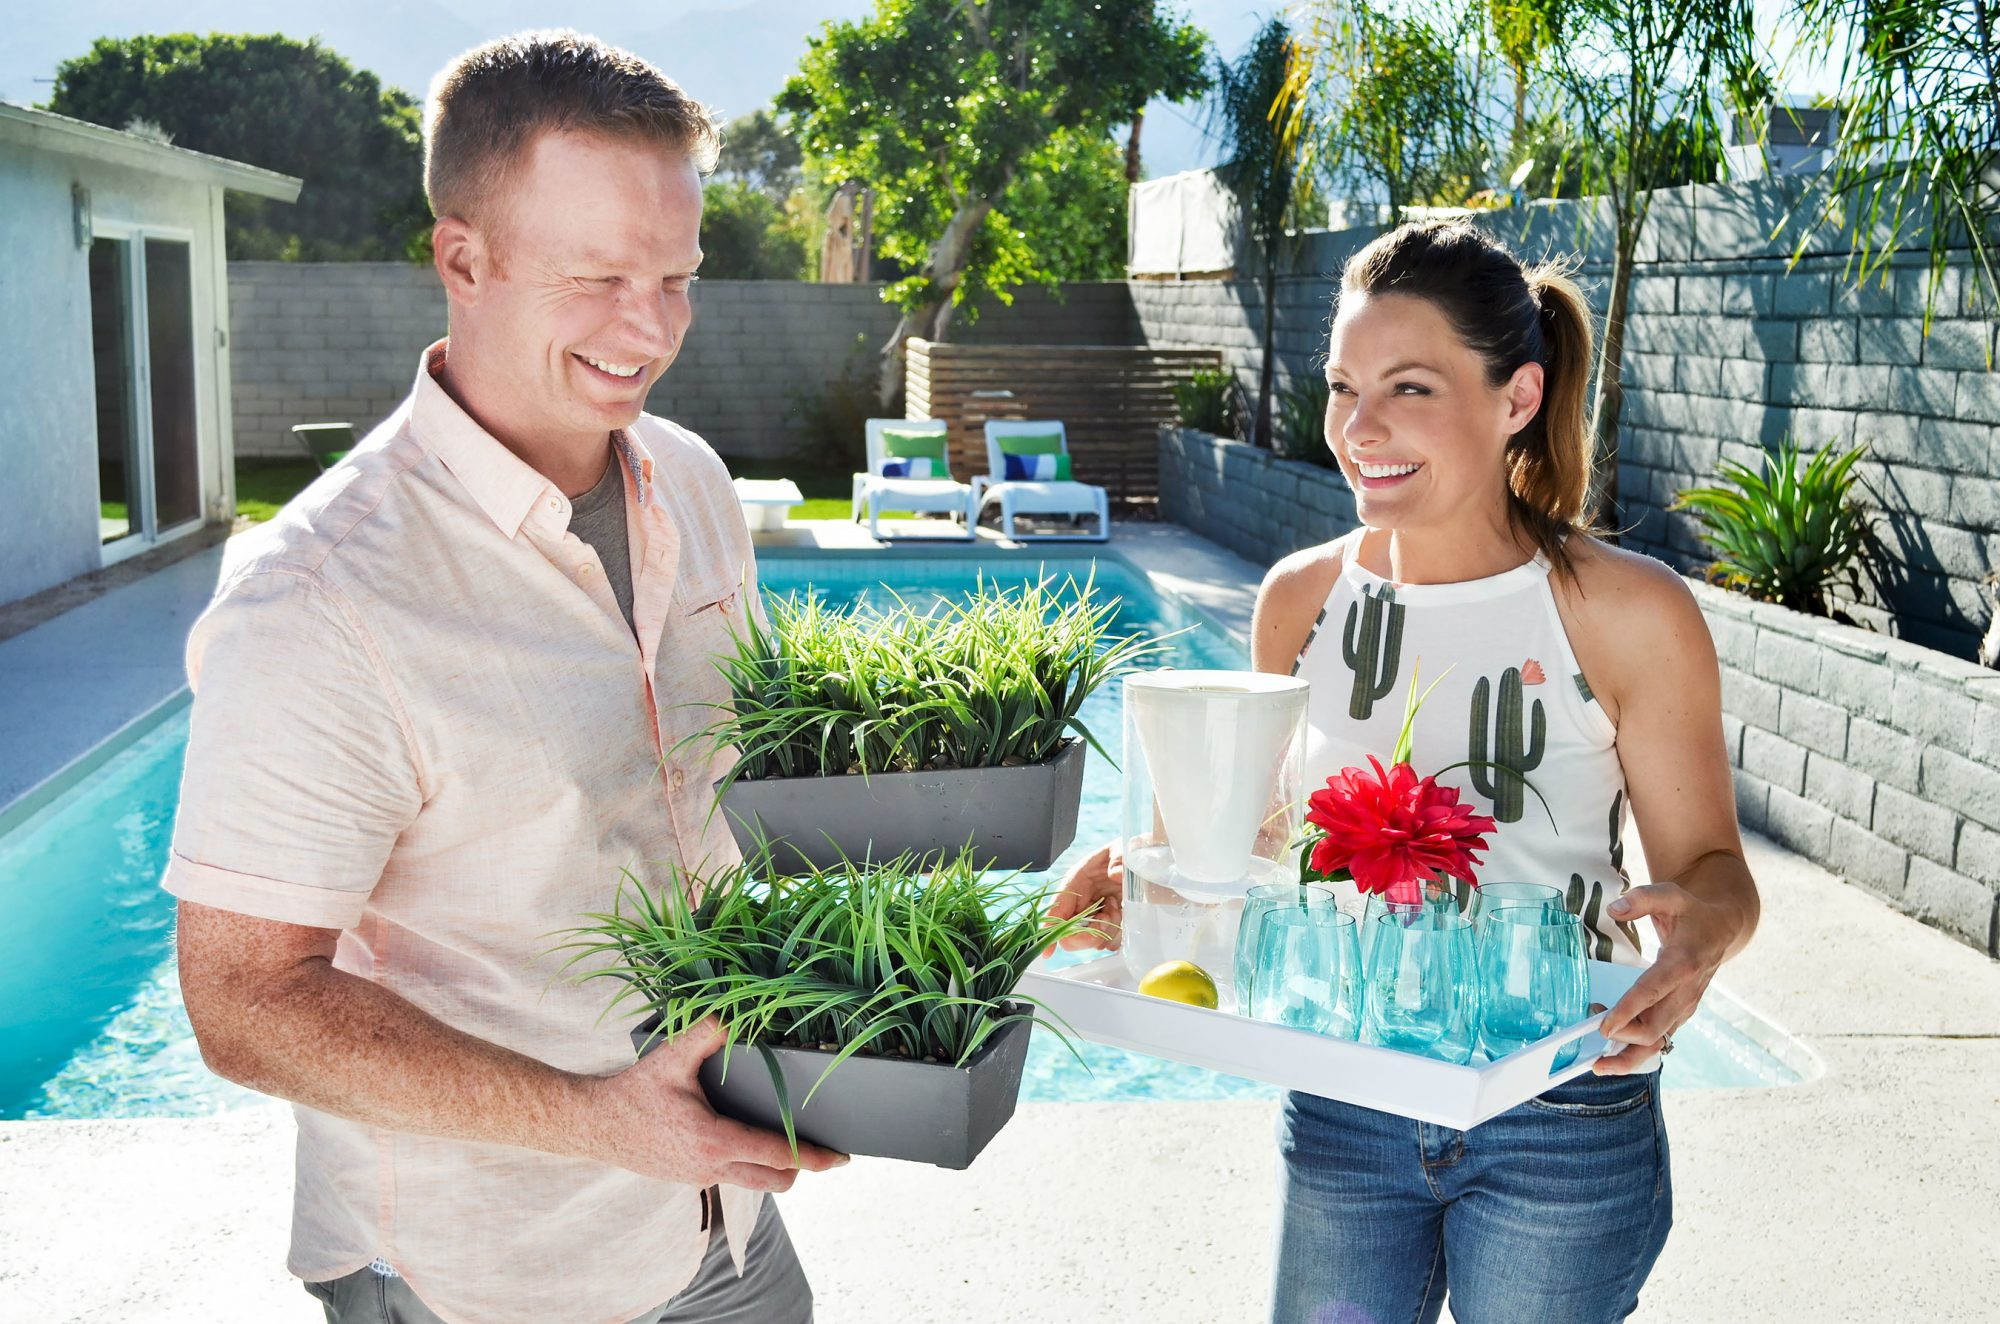 DesertFlippersEric and Lindsay BennettCredit: HGTV